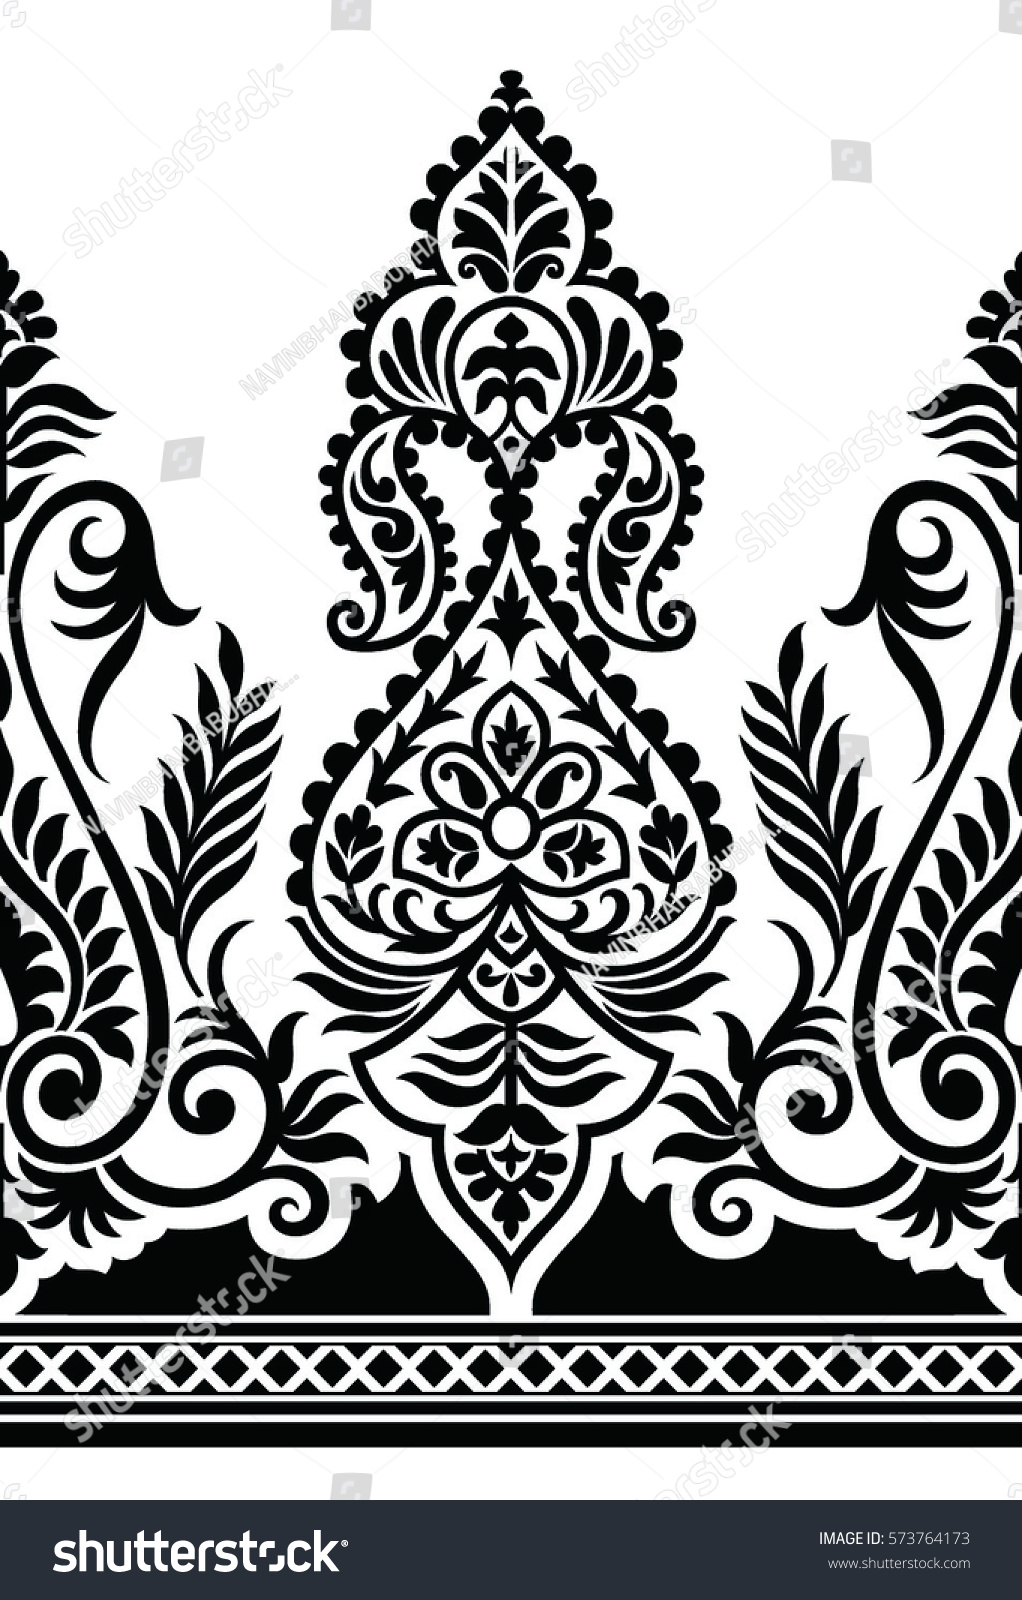 Traditional black and white indian motif